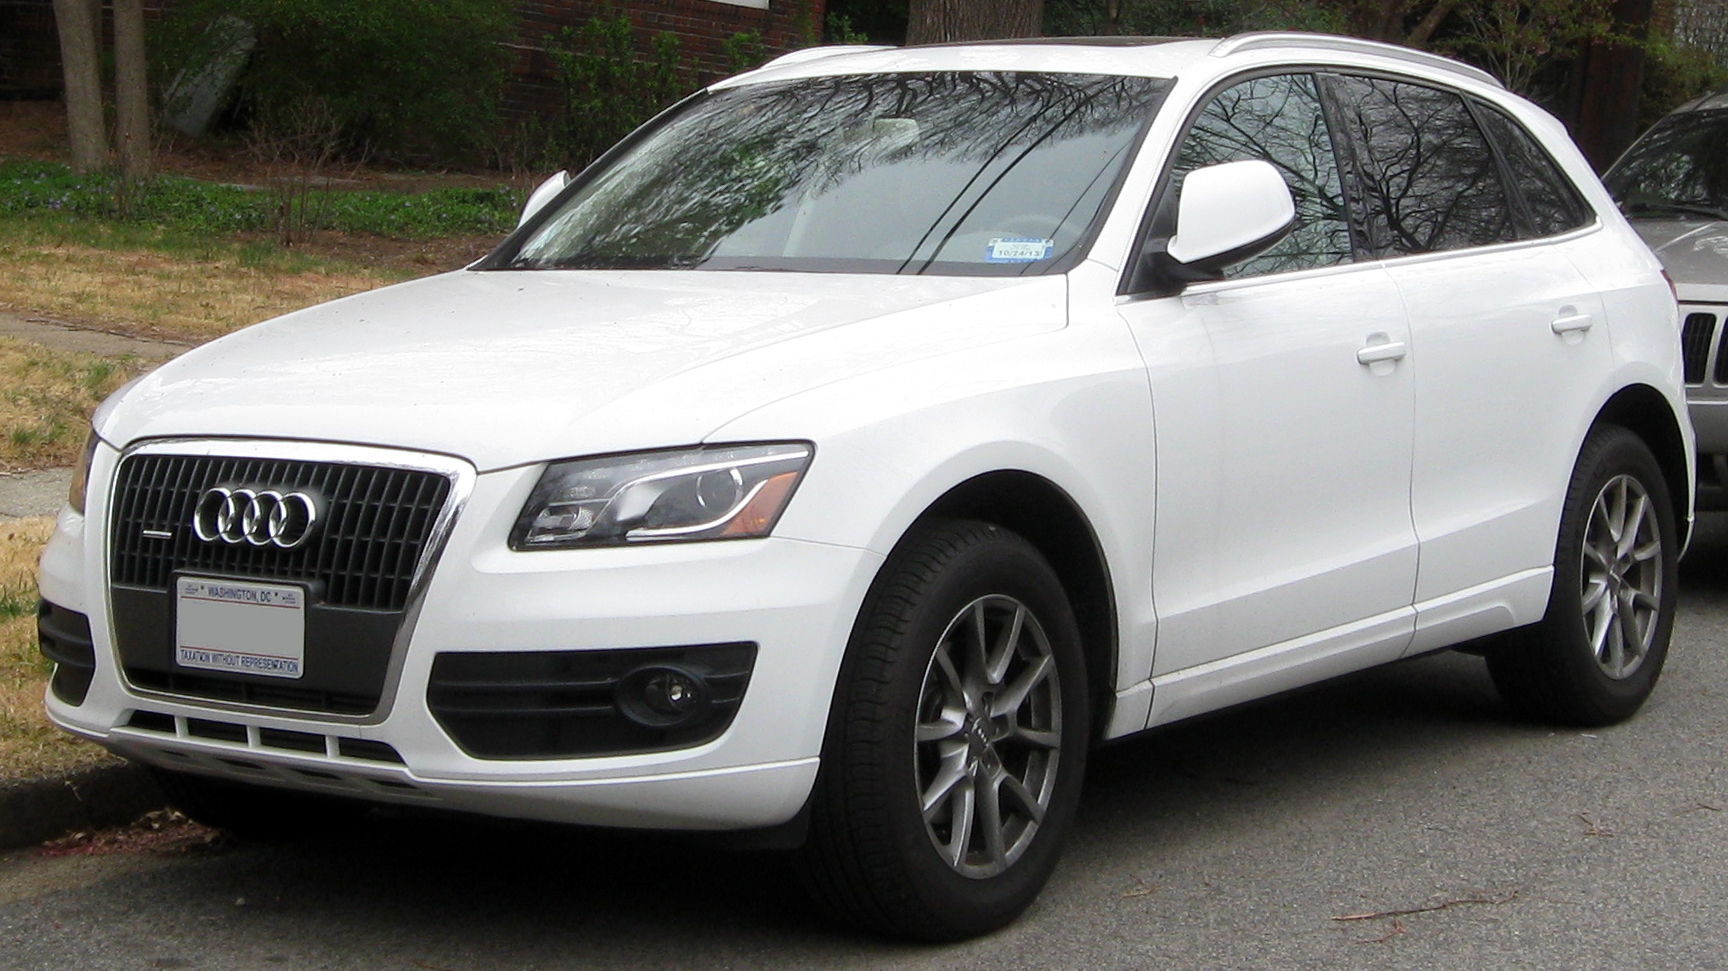 2013 audi q7 tdi premium quattro 4dr suv 3 0l v6 turbo diesel awd auto. Black Bedroom Furniture Sets. Home Design Ideas